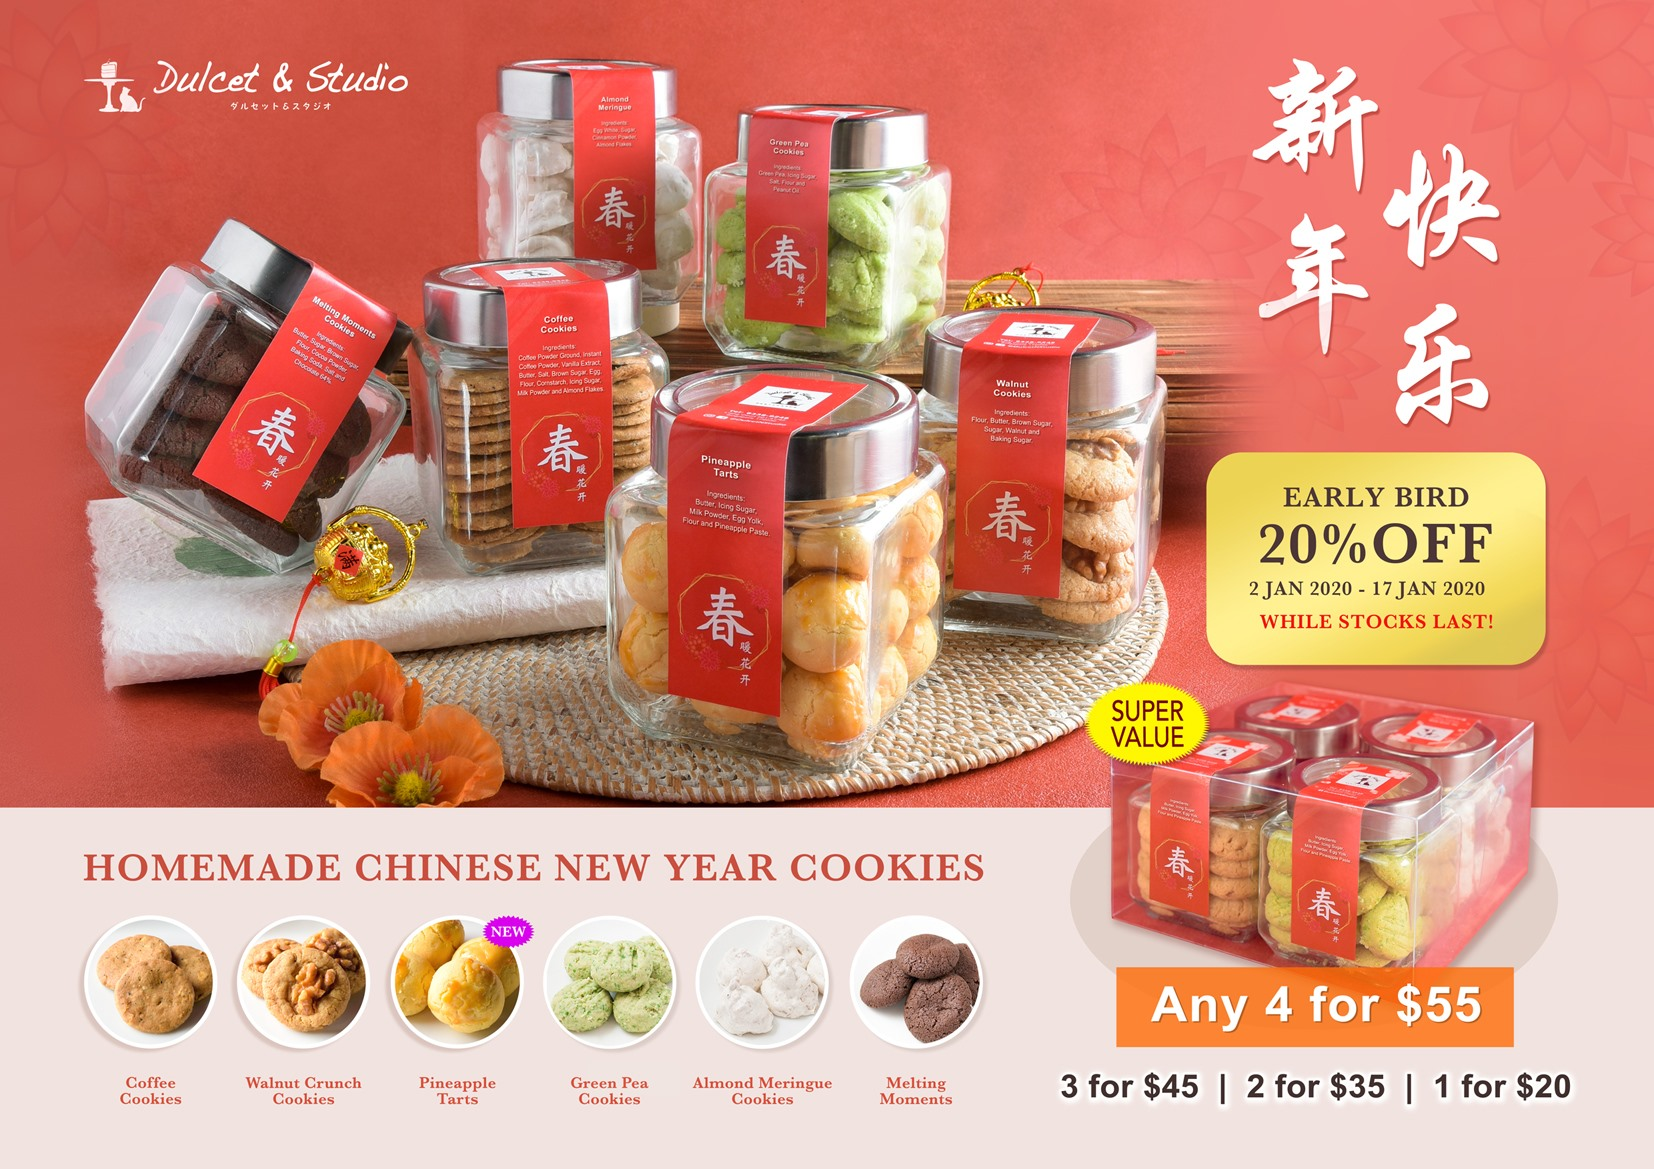 Dulcet & Studio SG 20% Off Chinese New Year Cookies 2-17 Jan 2020   Why Not Deals & Promotions